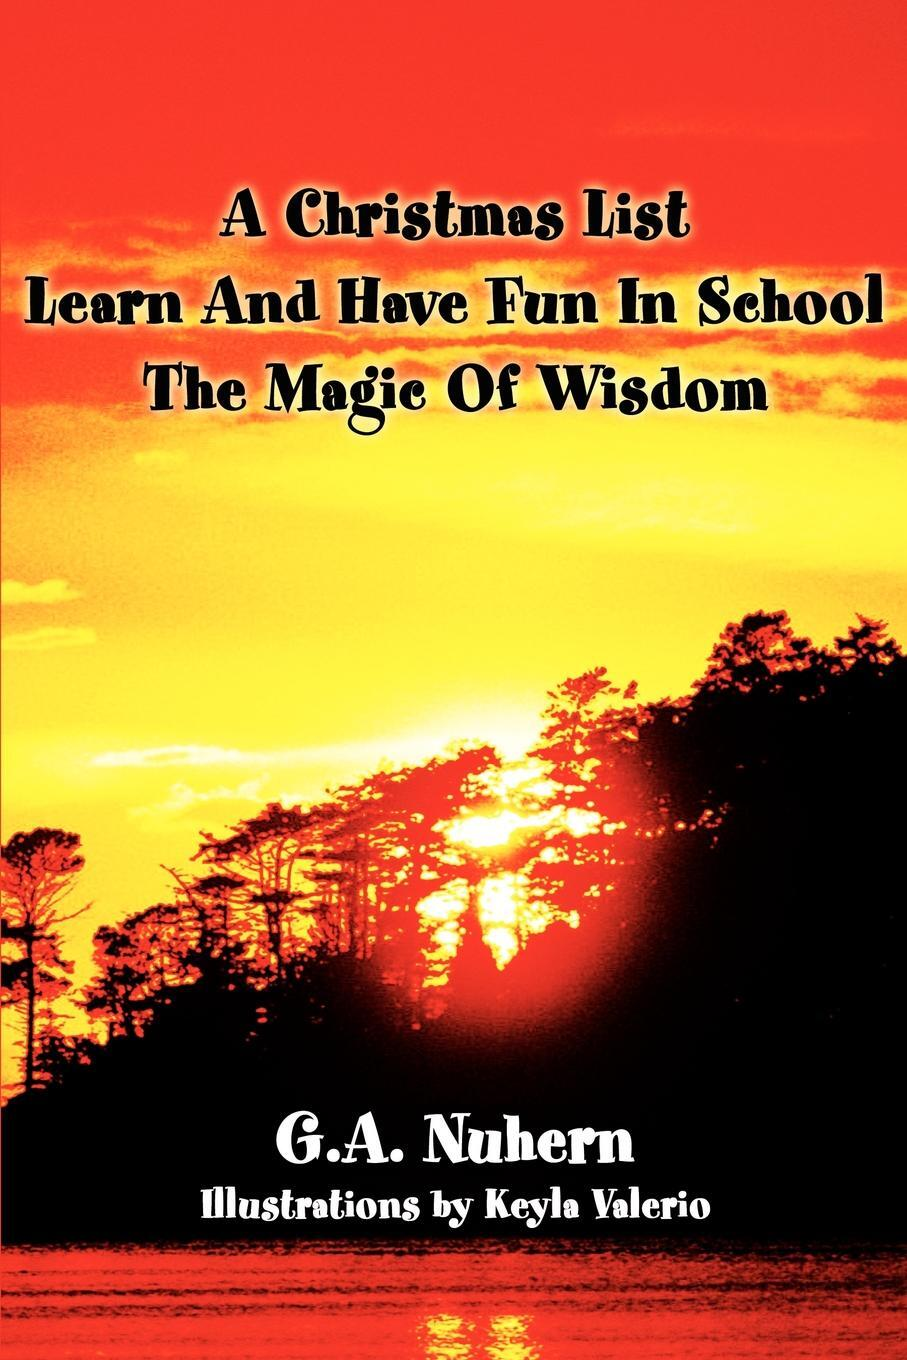 Книга A Christmas List Learn And Have Fun In School and The Magic Of Wisdom. G. a. Nuhern